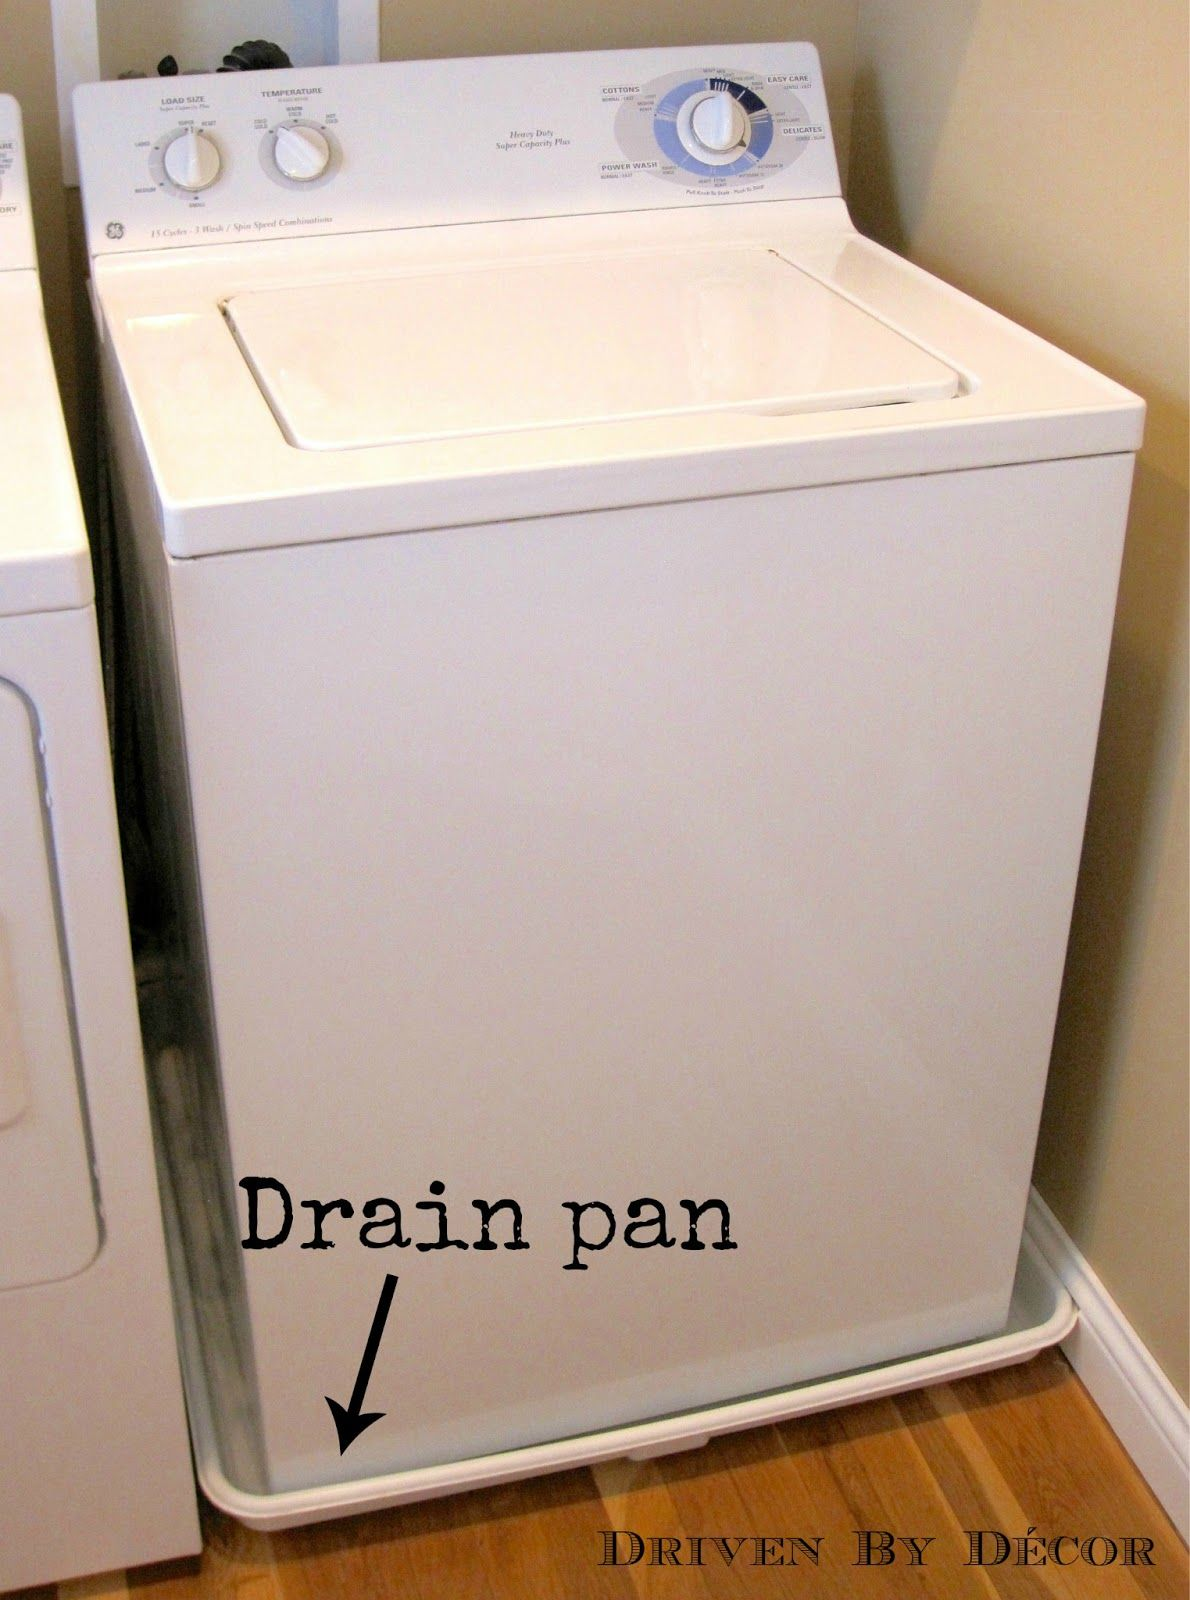 Driven By Décor Second Floor Laundry Rooms Pros Cons Tips For Preventing Floods